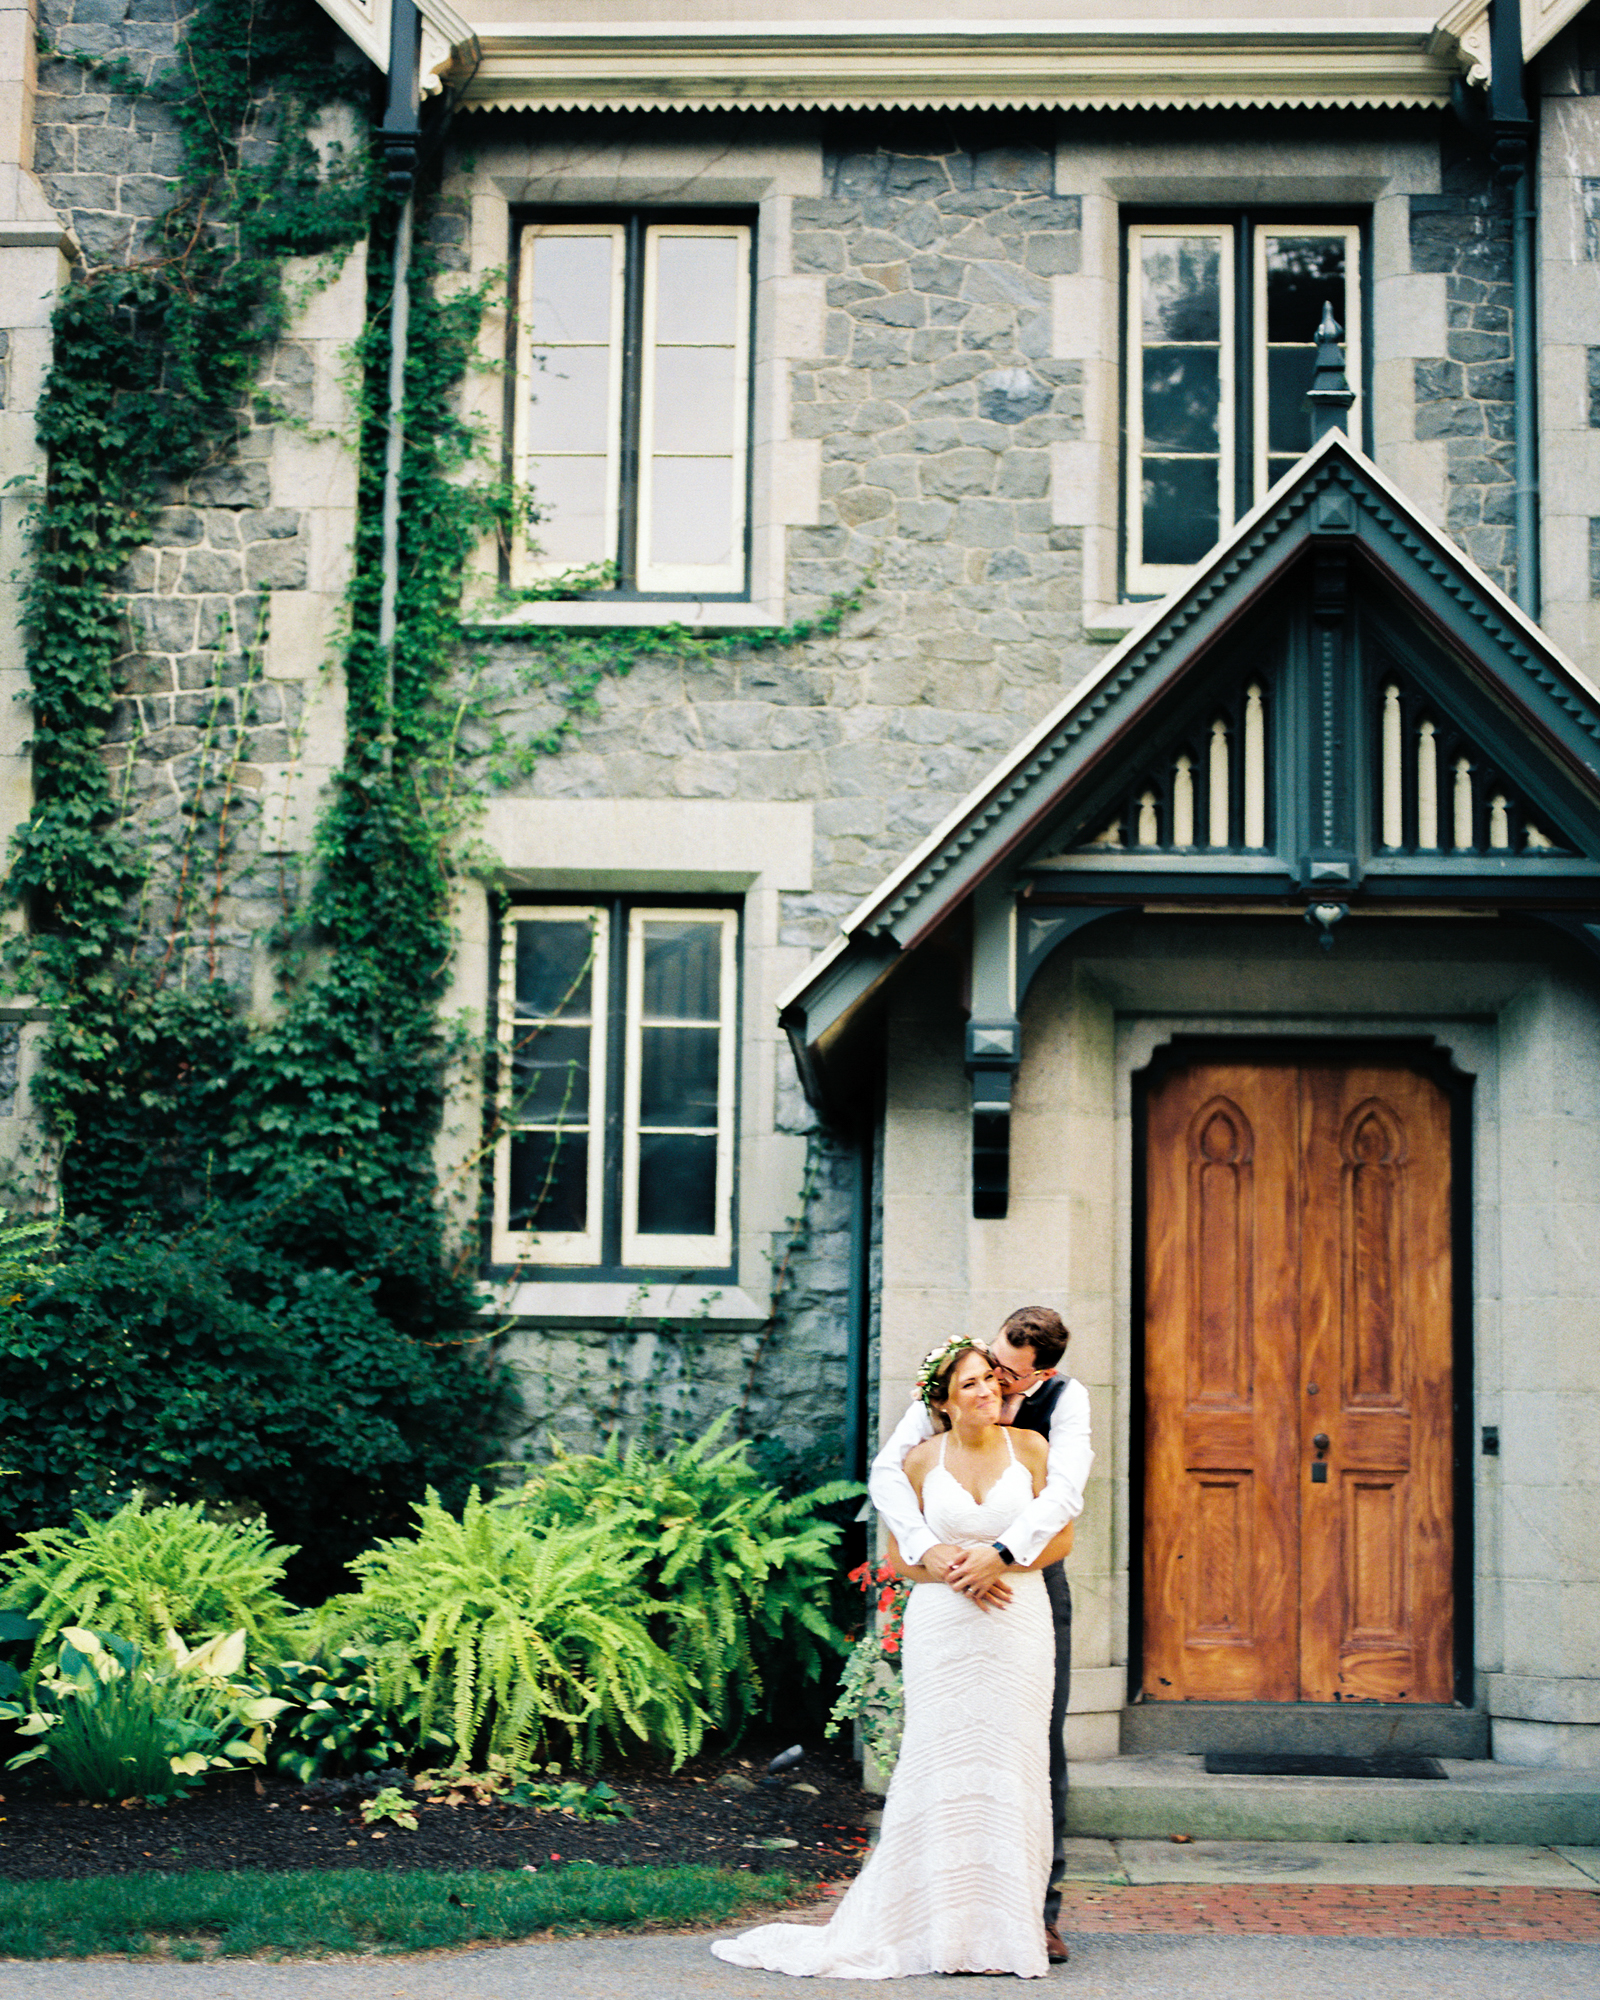 film-wedding-family-photographer-charlotte-carriage-house-rockwood-park-wilmington-delaware-52.jpg